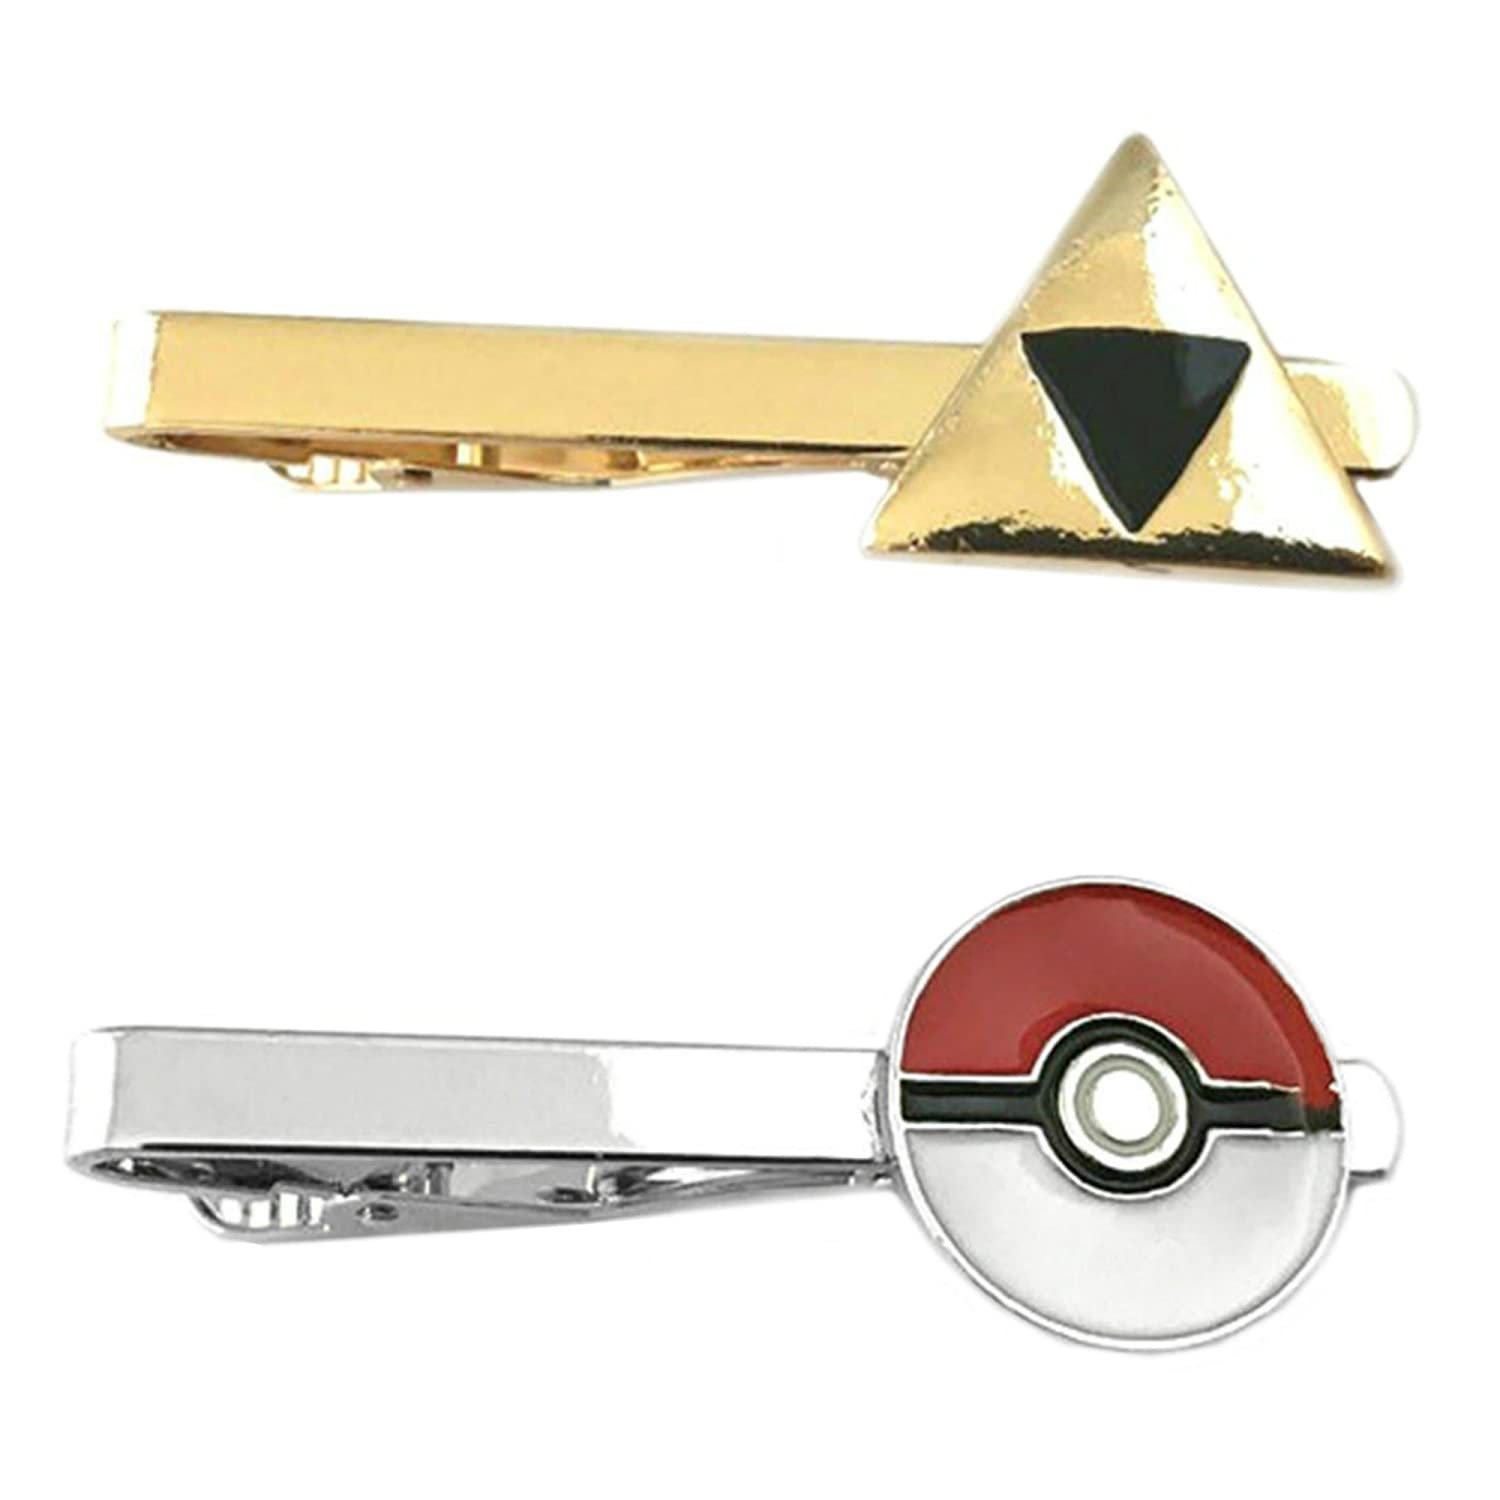 Outlander Video Games - Legend of Zelda Triforce & PokeMon PokeBall - Tiebar Tie Clasp Set of 2 Wedding Superhero Logo w/Gift Box Outlander Brand